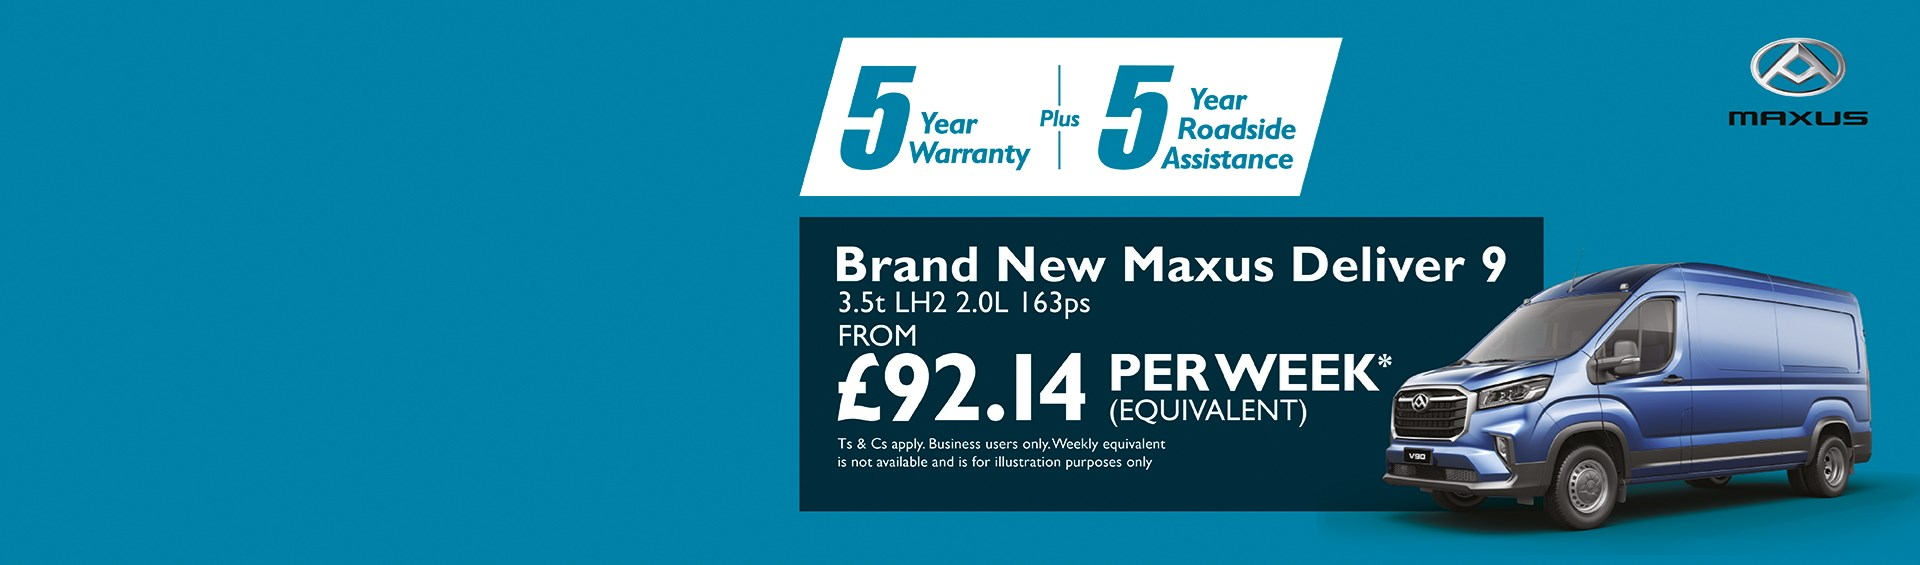 Brand new Maxus Deliver 9